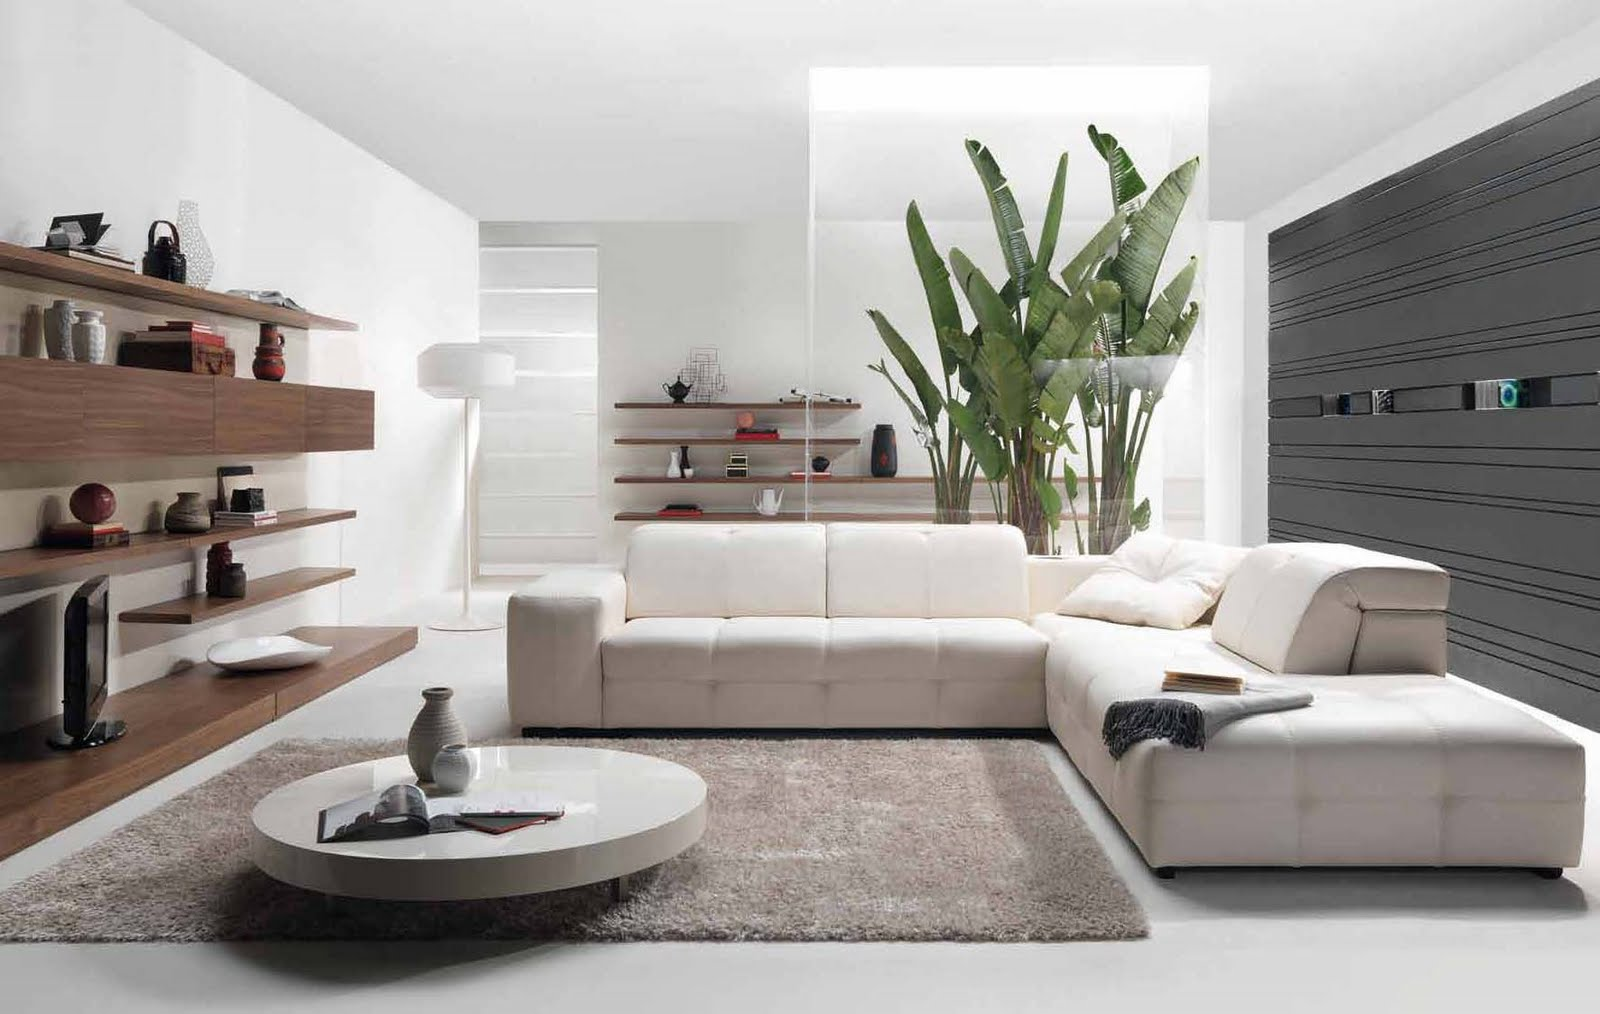 Modern Home Interior amp Furniture Designs amp DIY Ideas  : LivingRoomInteriorDesignStyles from dornob.blogspot.com size 1600 x 1014 jpeg 151kB